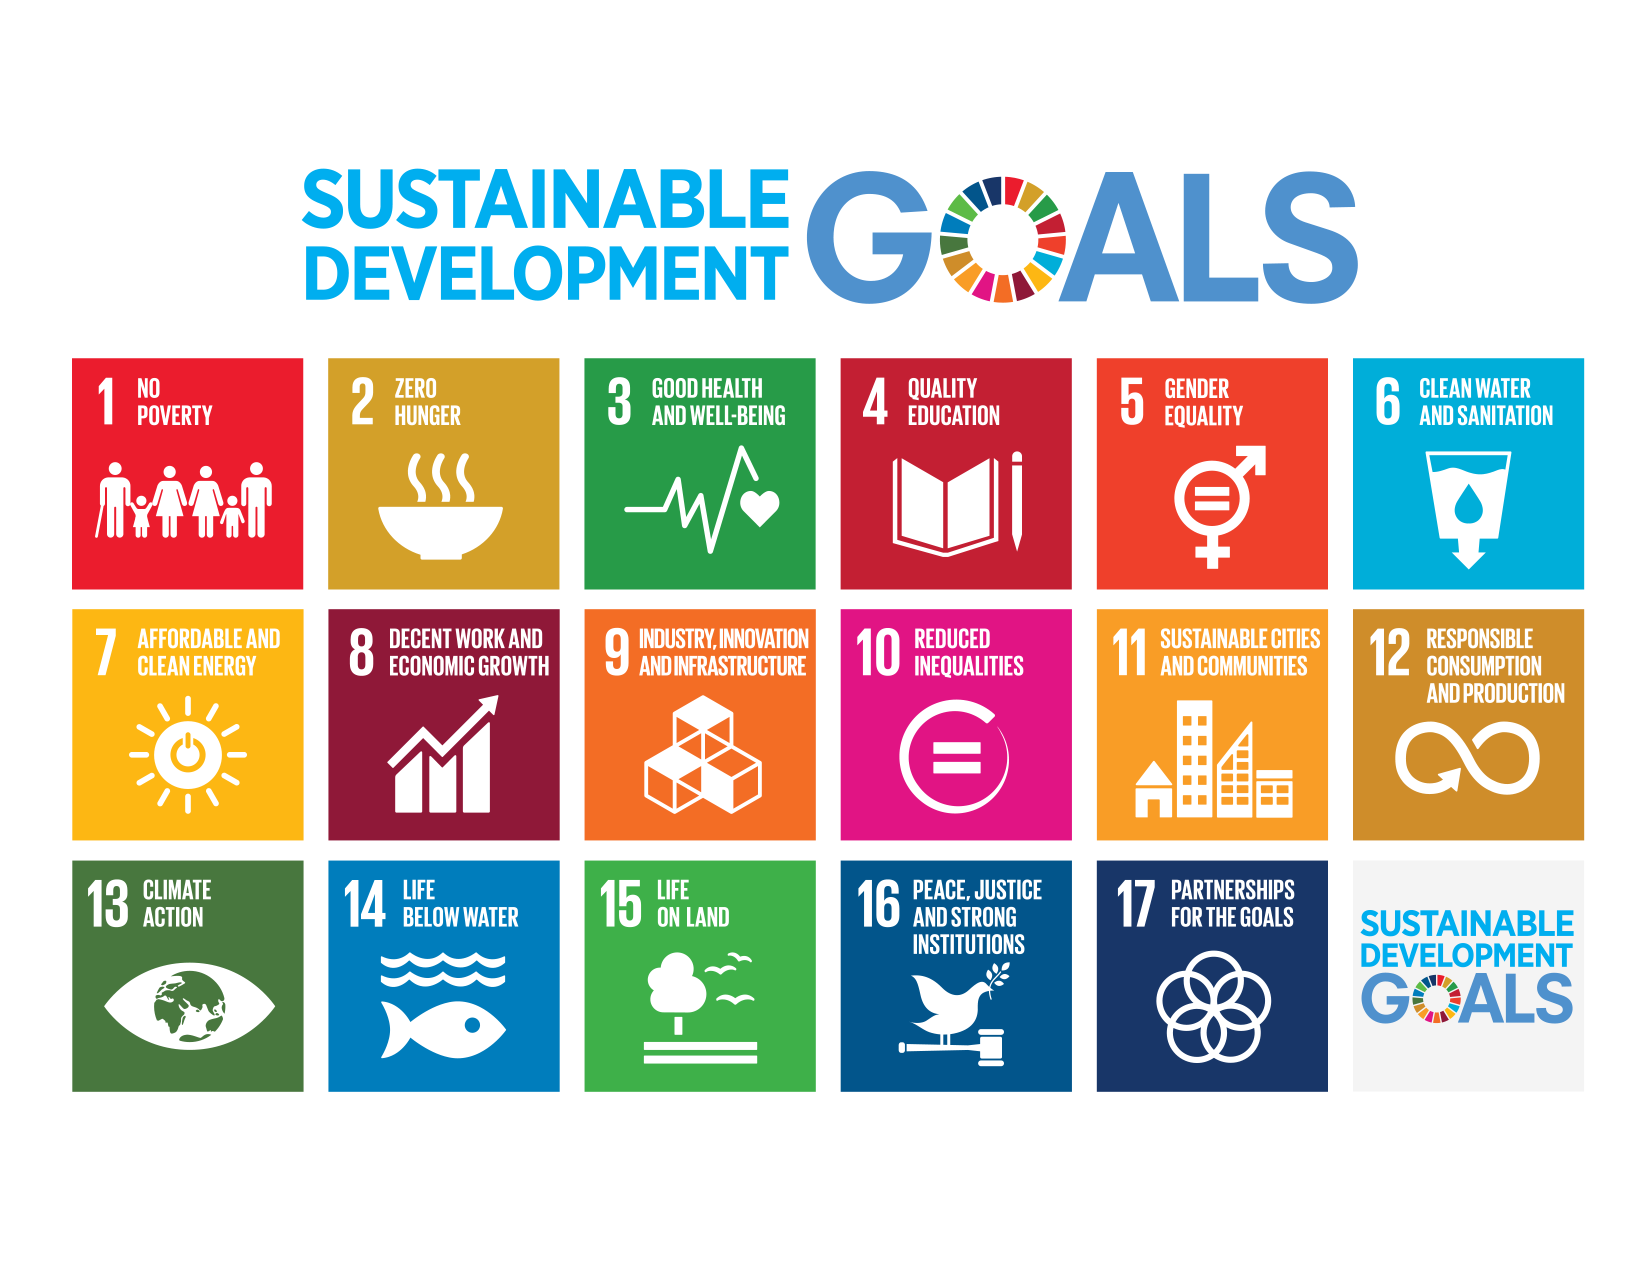 List of sustainability goals in a calendar format